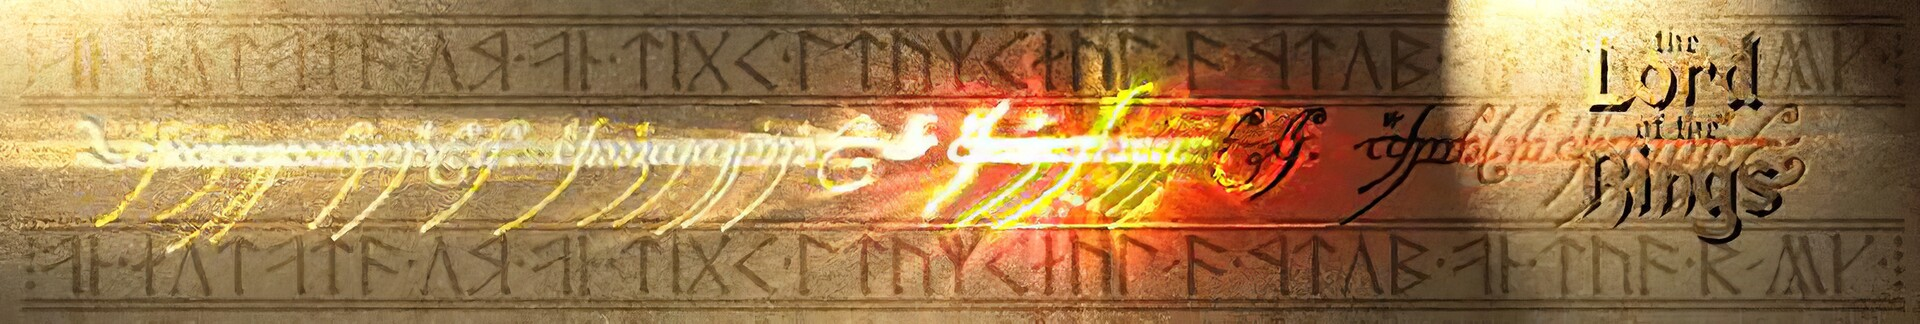 The one ring web banner